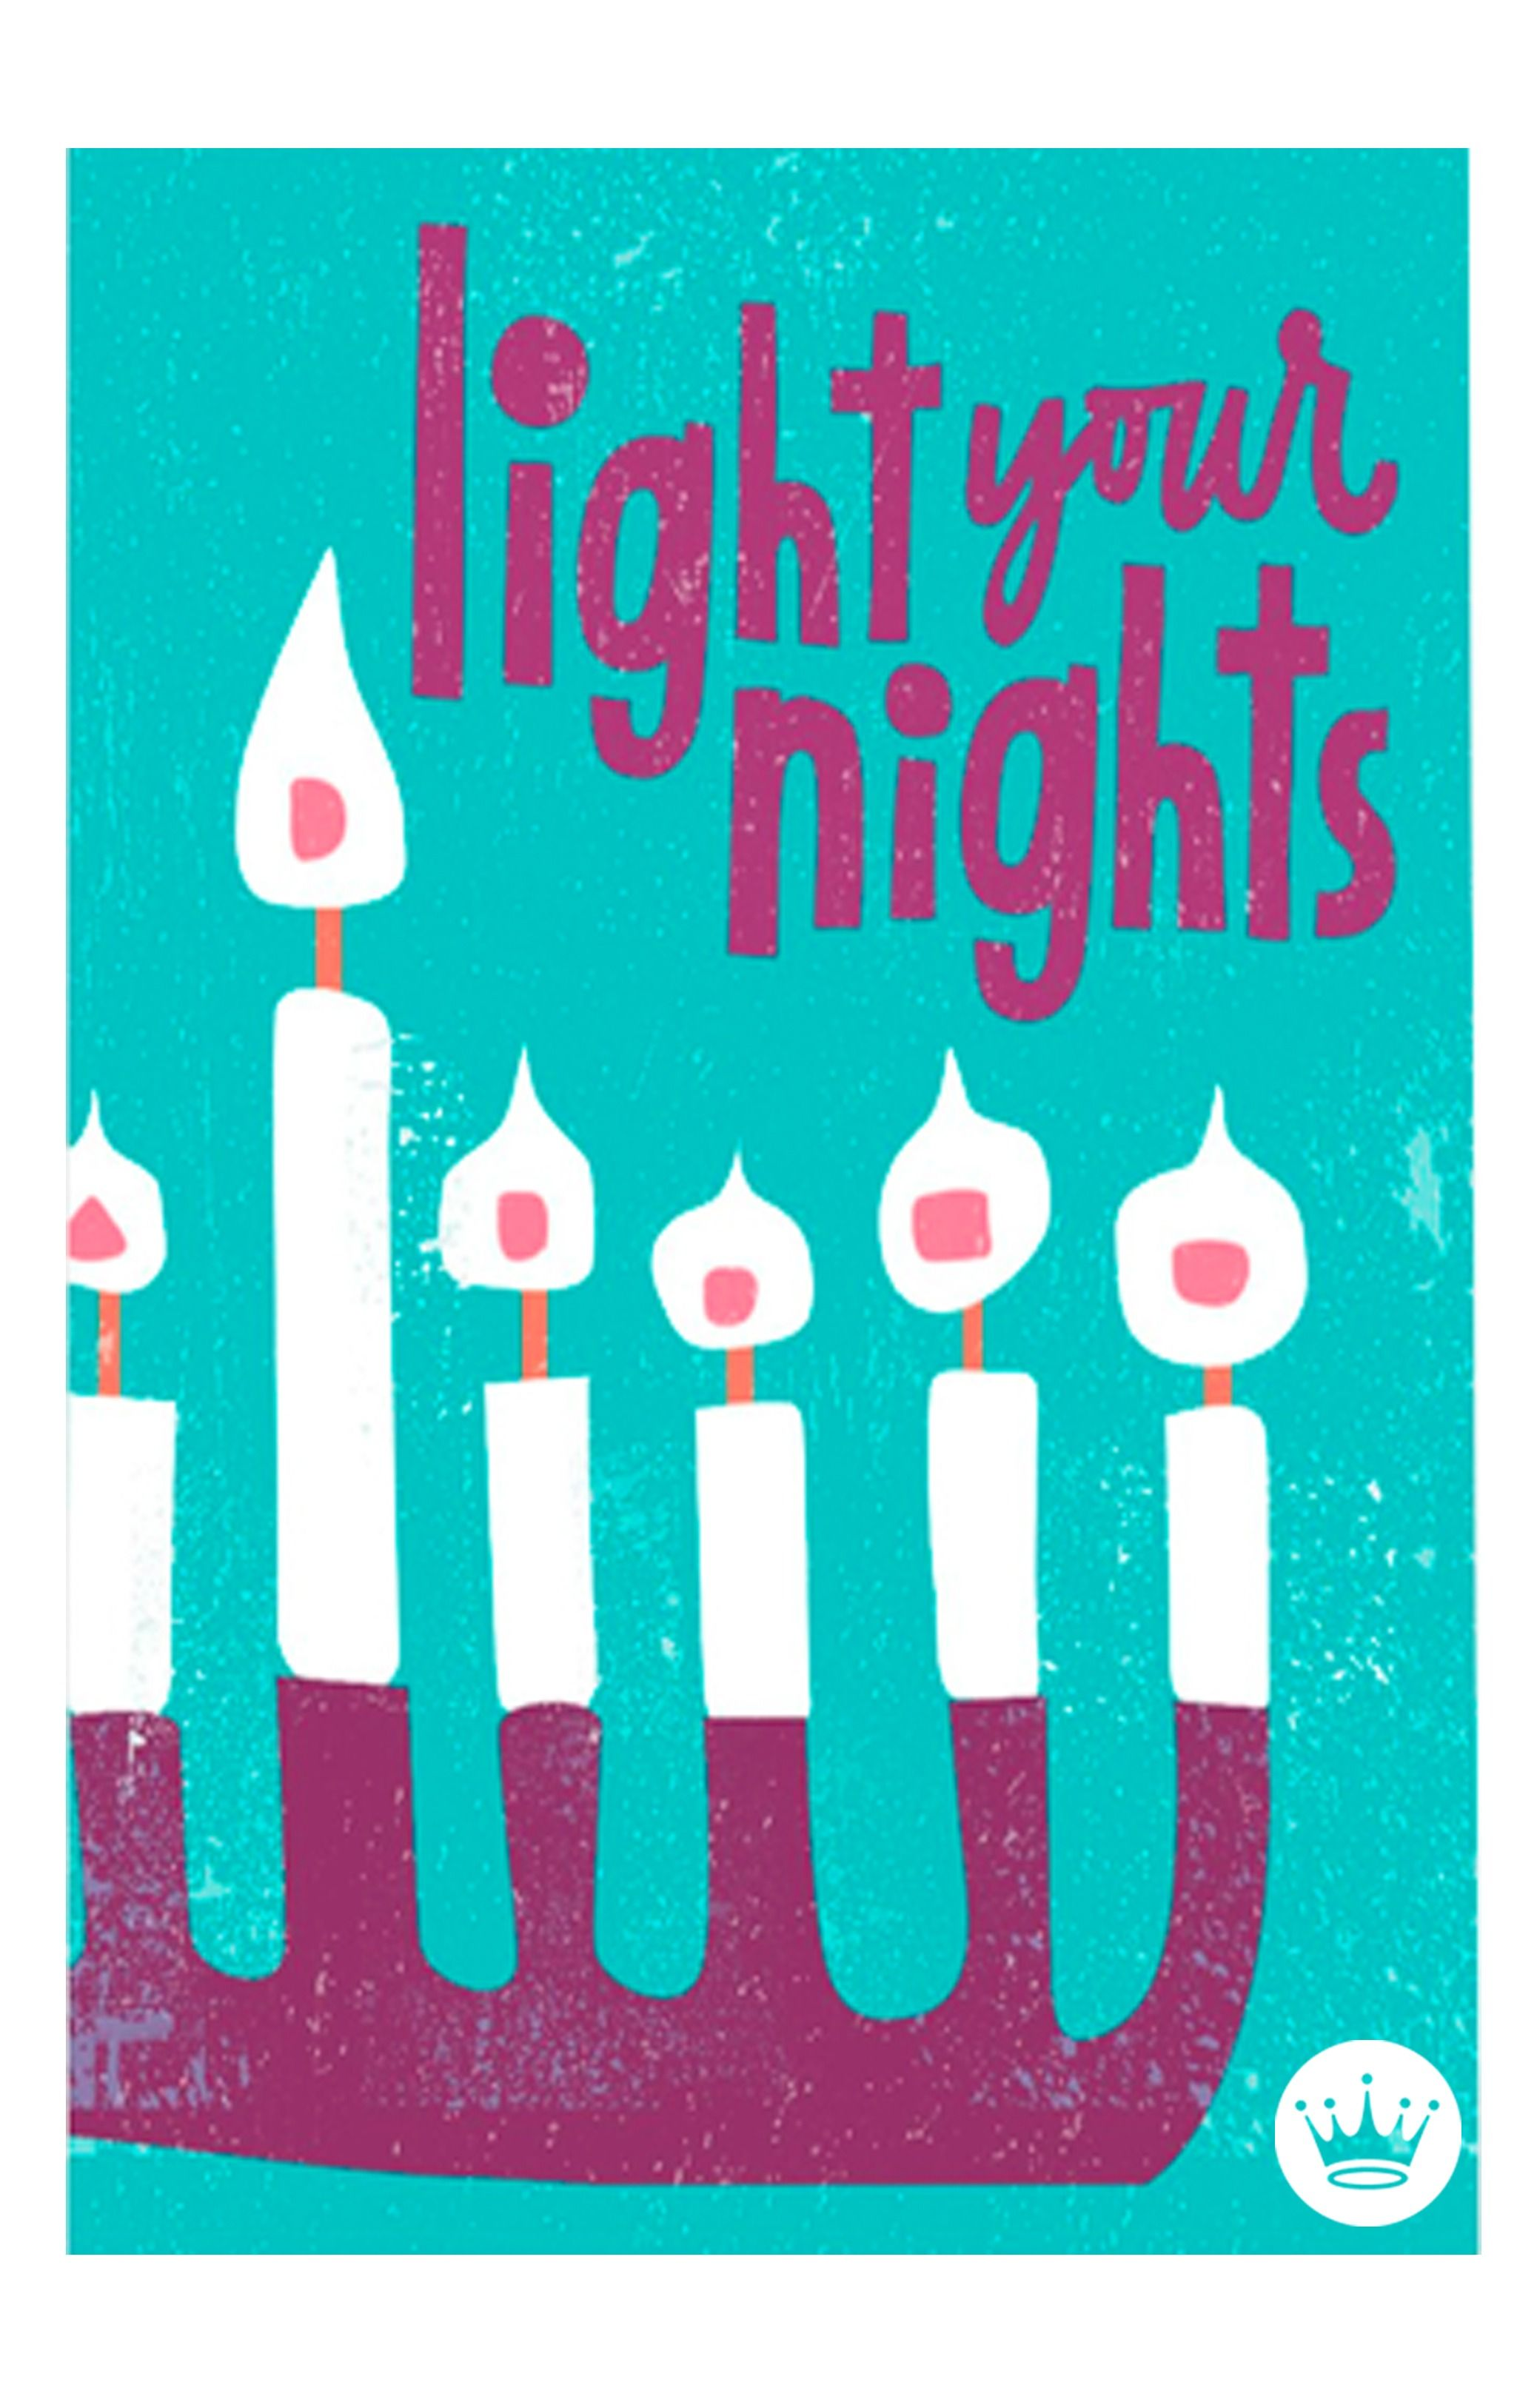 We love this so bright light your nights hallmark hanukkah card we love this so bright light your nights hallmark hanukkah card you m4hsunfo